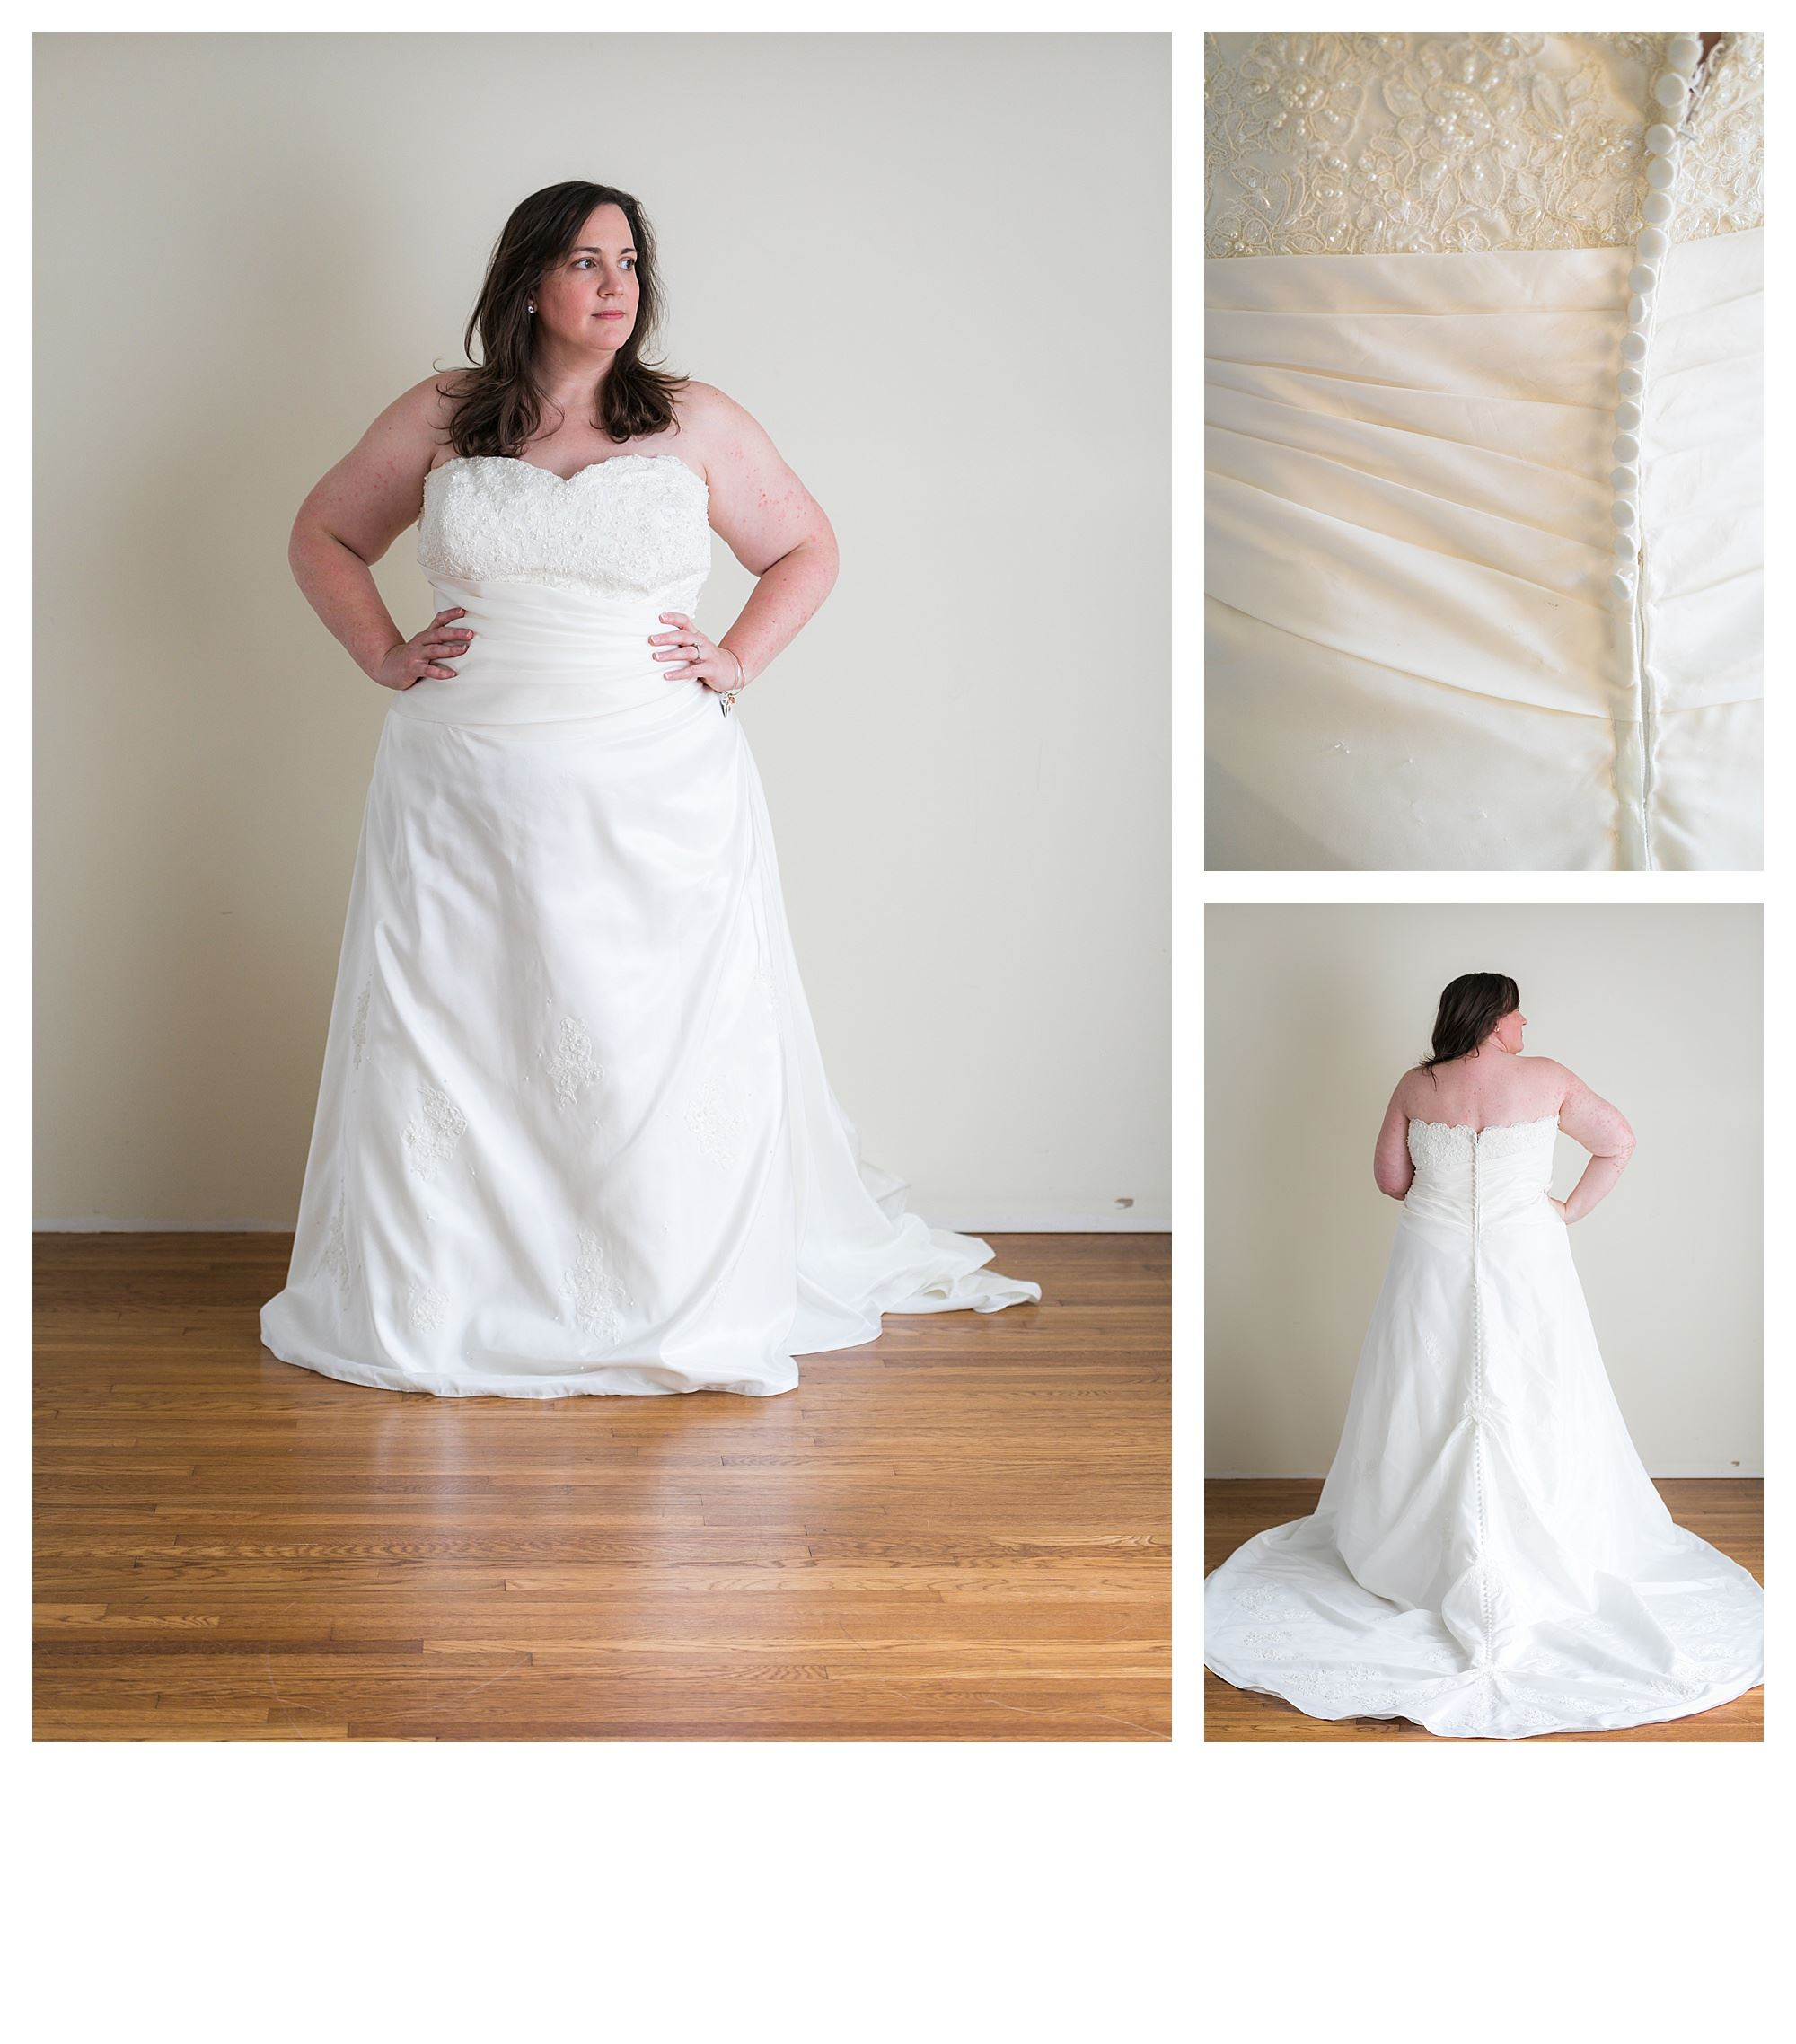 Sabella - Size 26 - Ivory - Originally priced $999 - Sample box price $699